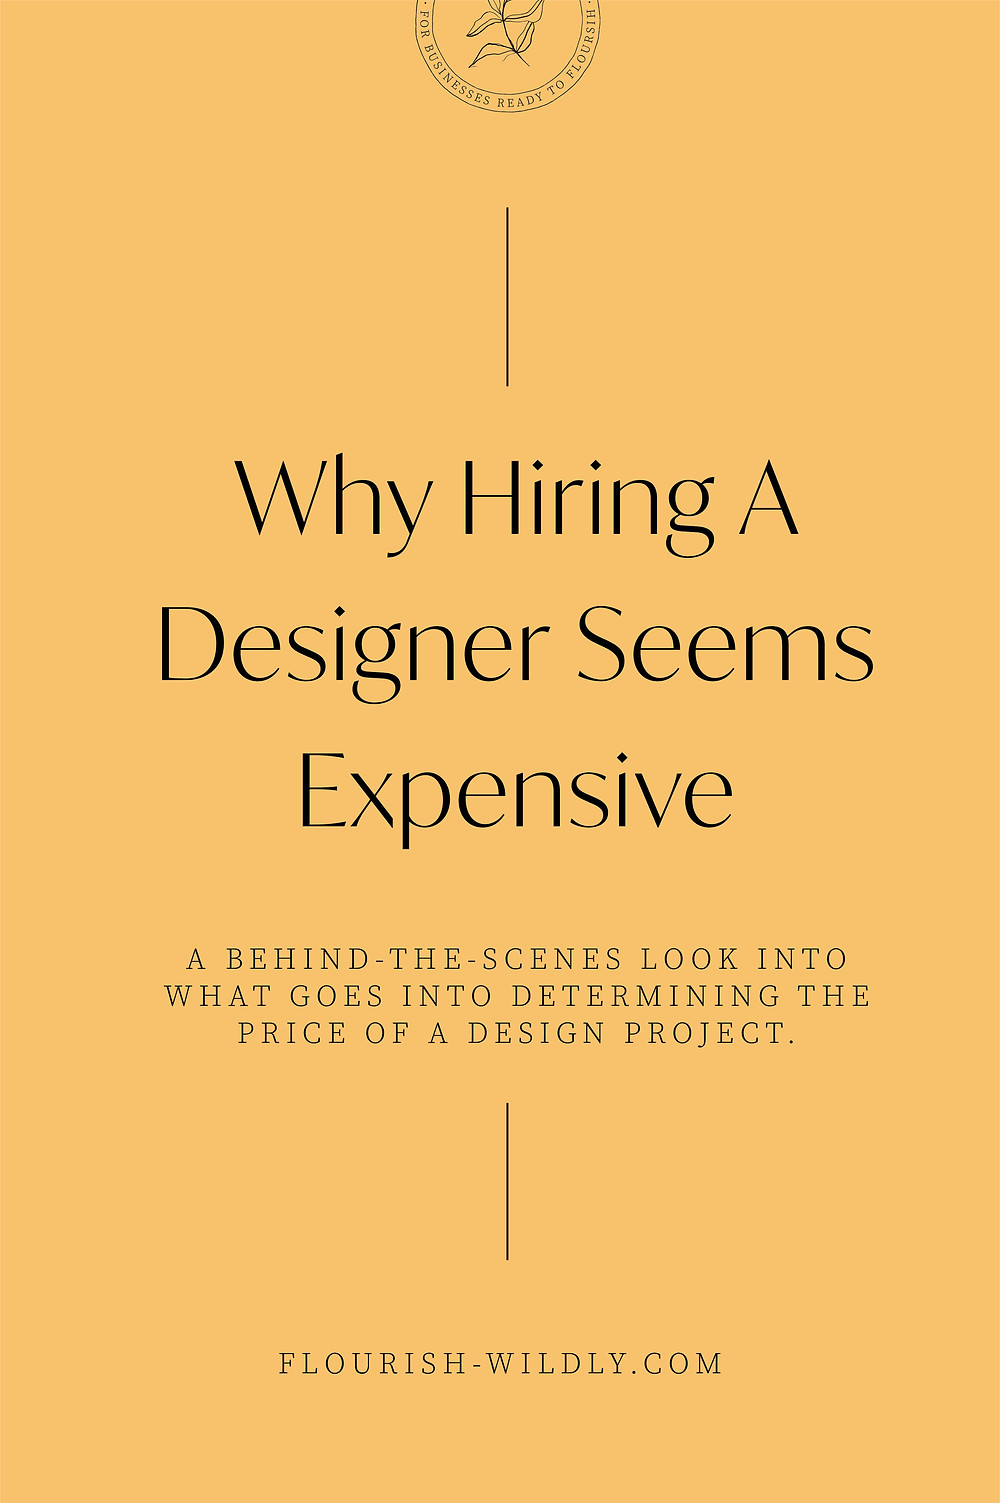 Why hiring a designer seems expensive, a behind-the-scens look into why designers charge what they do, a blog post by Flourish Wildly design studio